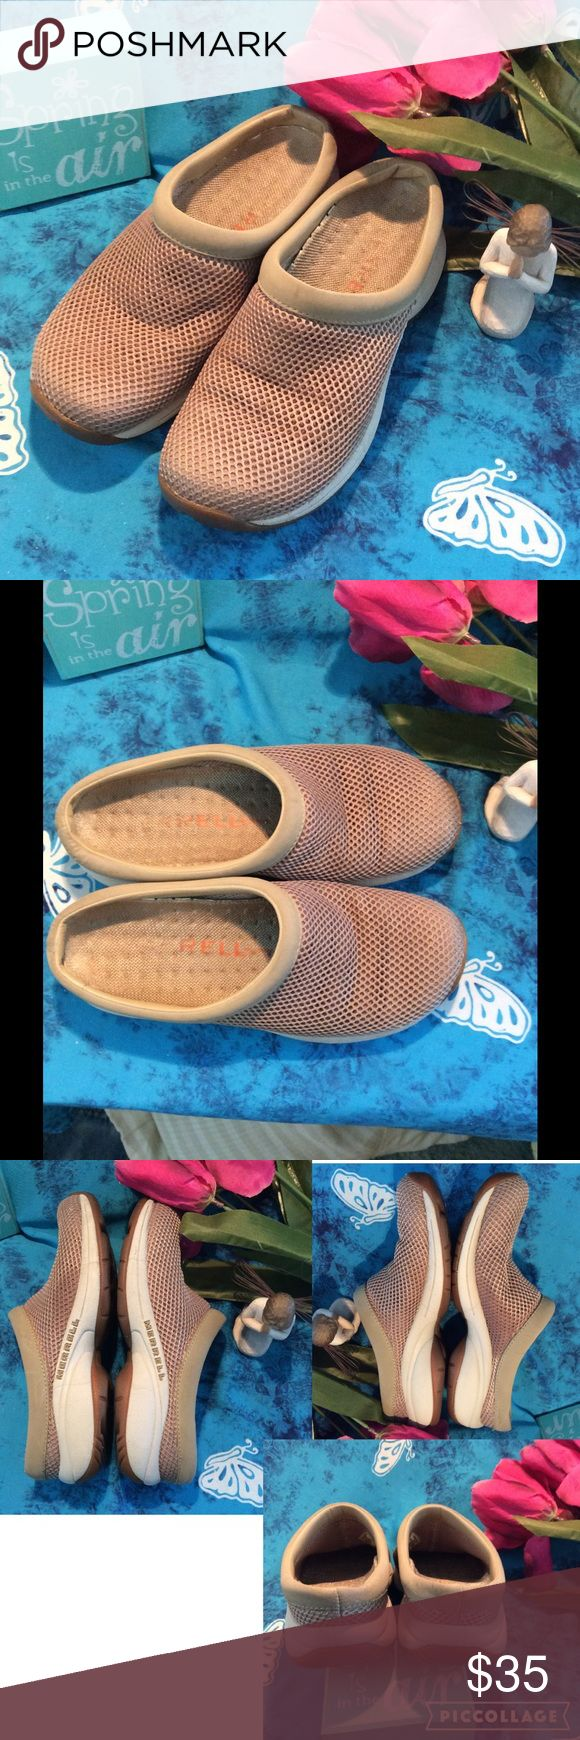 ⛱ New Price ⛱  Merrell Beautiful Merrell slip on's. Great condition with plenty of life left! Merrill Primo Breeze with Nike air Merrell Shoes Mules & Clogs